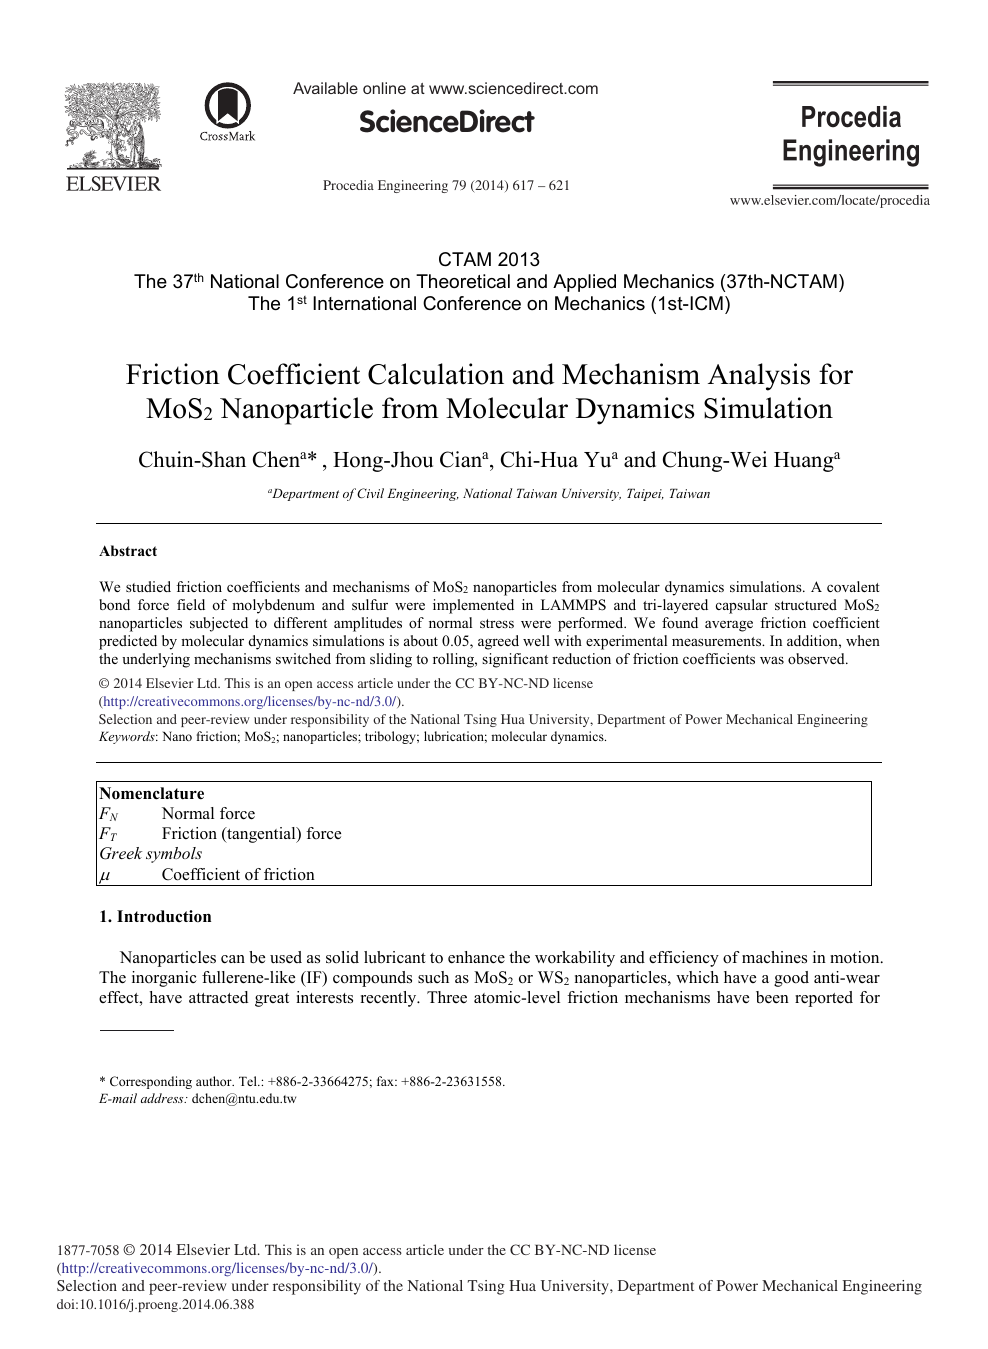 Friction Coefficient Calculation and Mechanism Analysis for MoS2